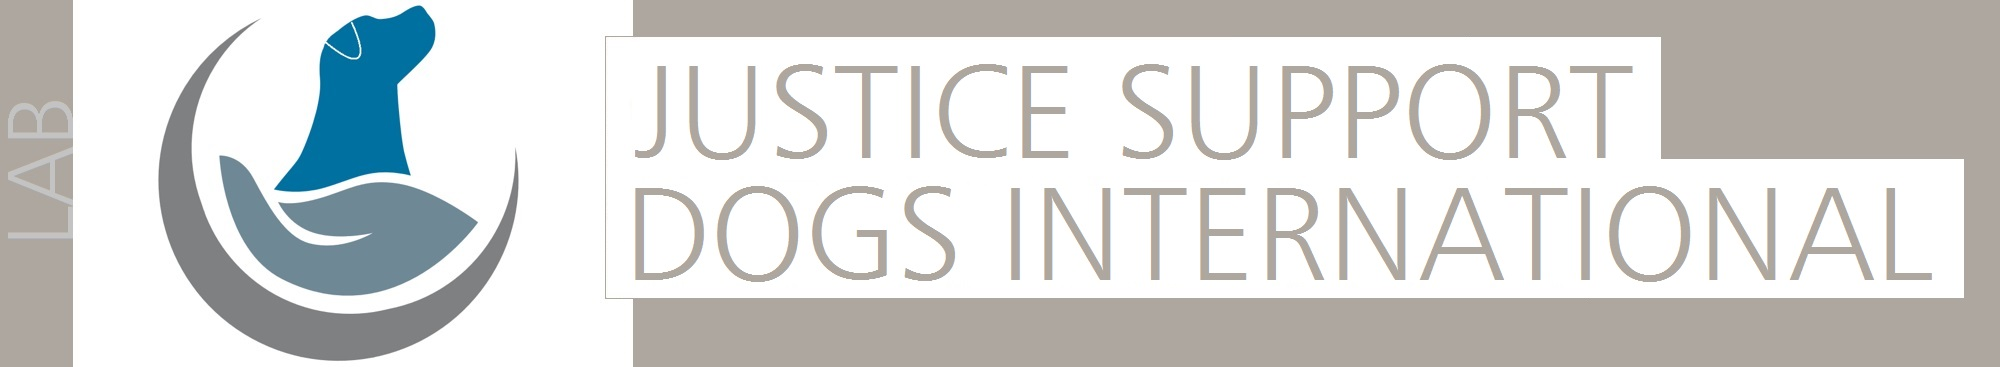 Read more about our Justice Support Dogs International Lab